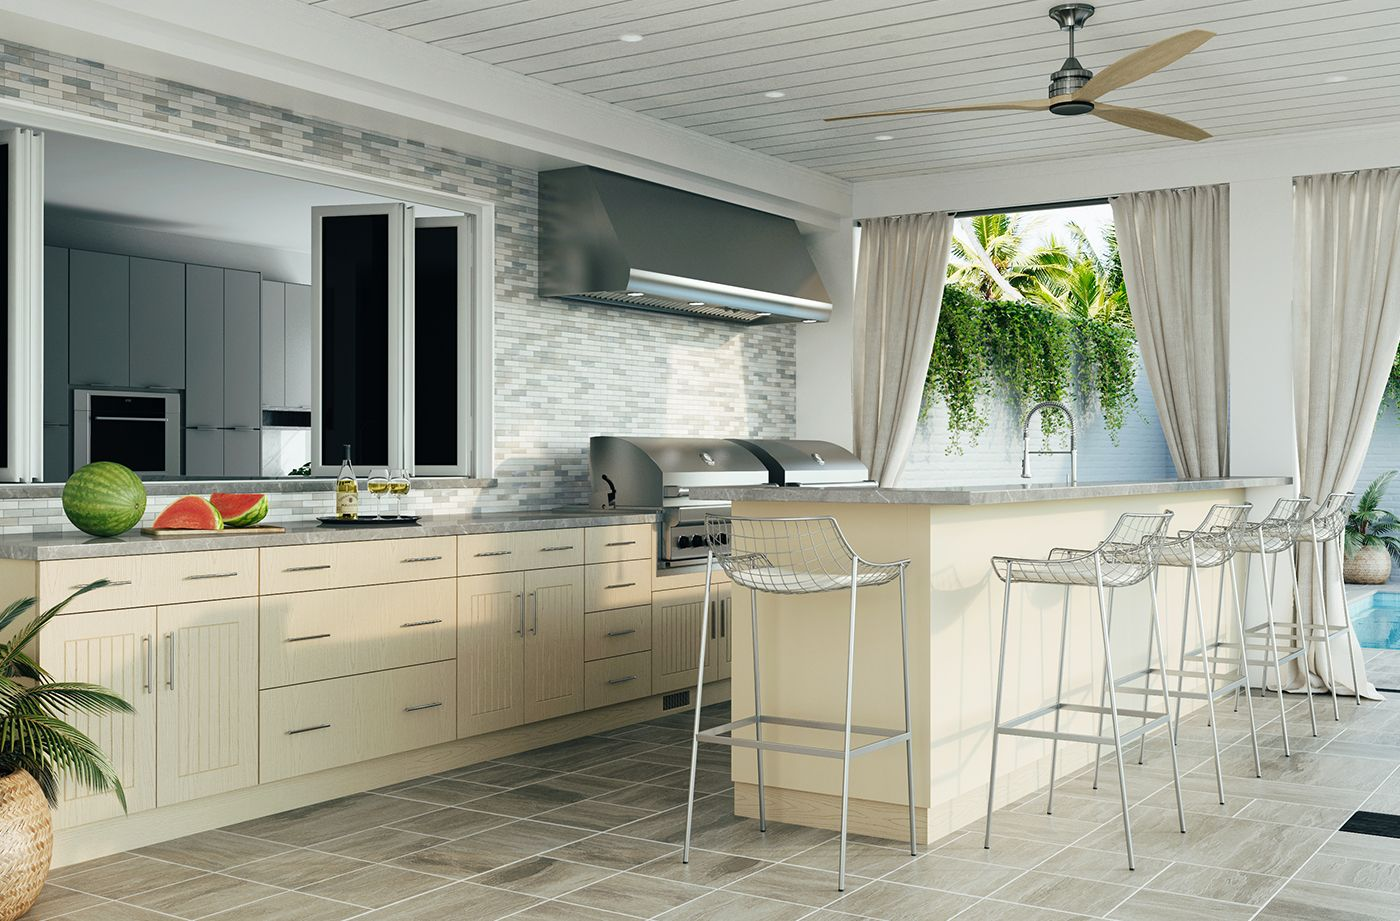 Costco Weatherstrong Outdoor Cabinetry In 2020 Outdoor Kitchen Cabinets Outdoor Kitchen Cabinetry